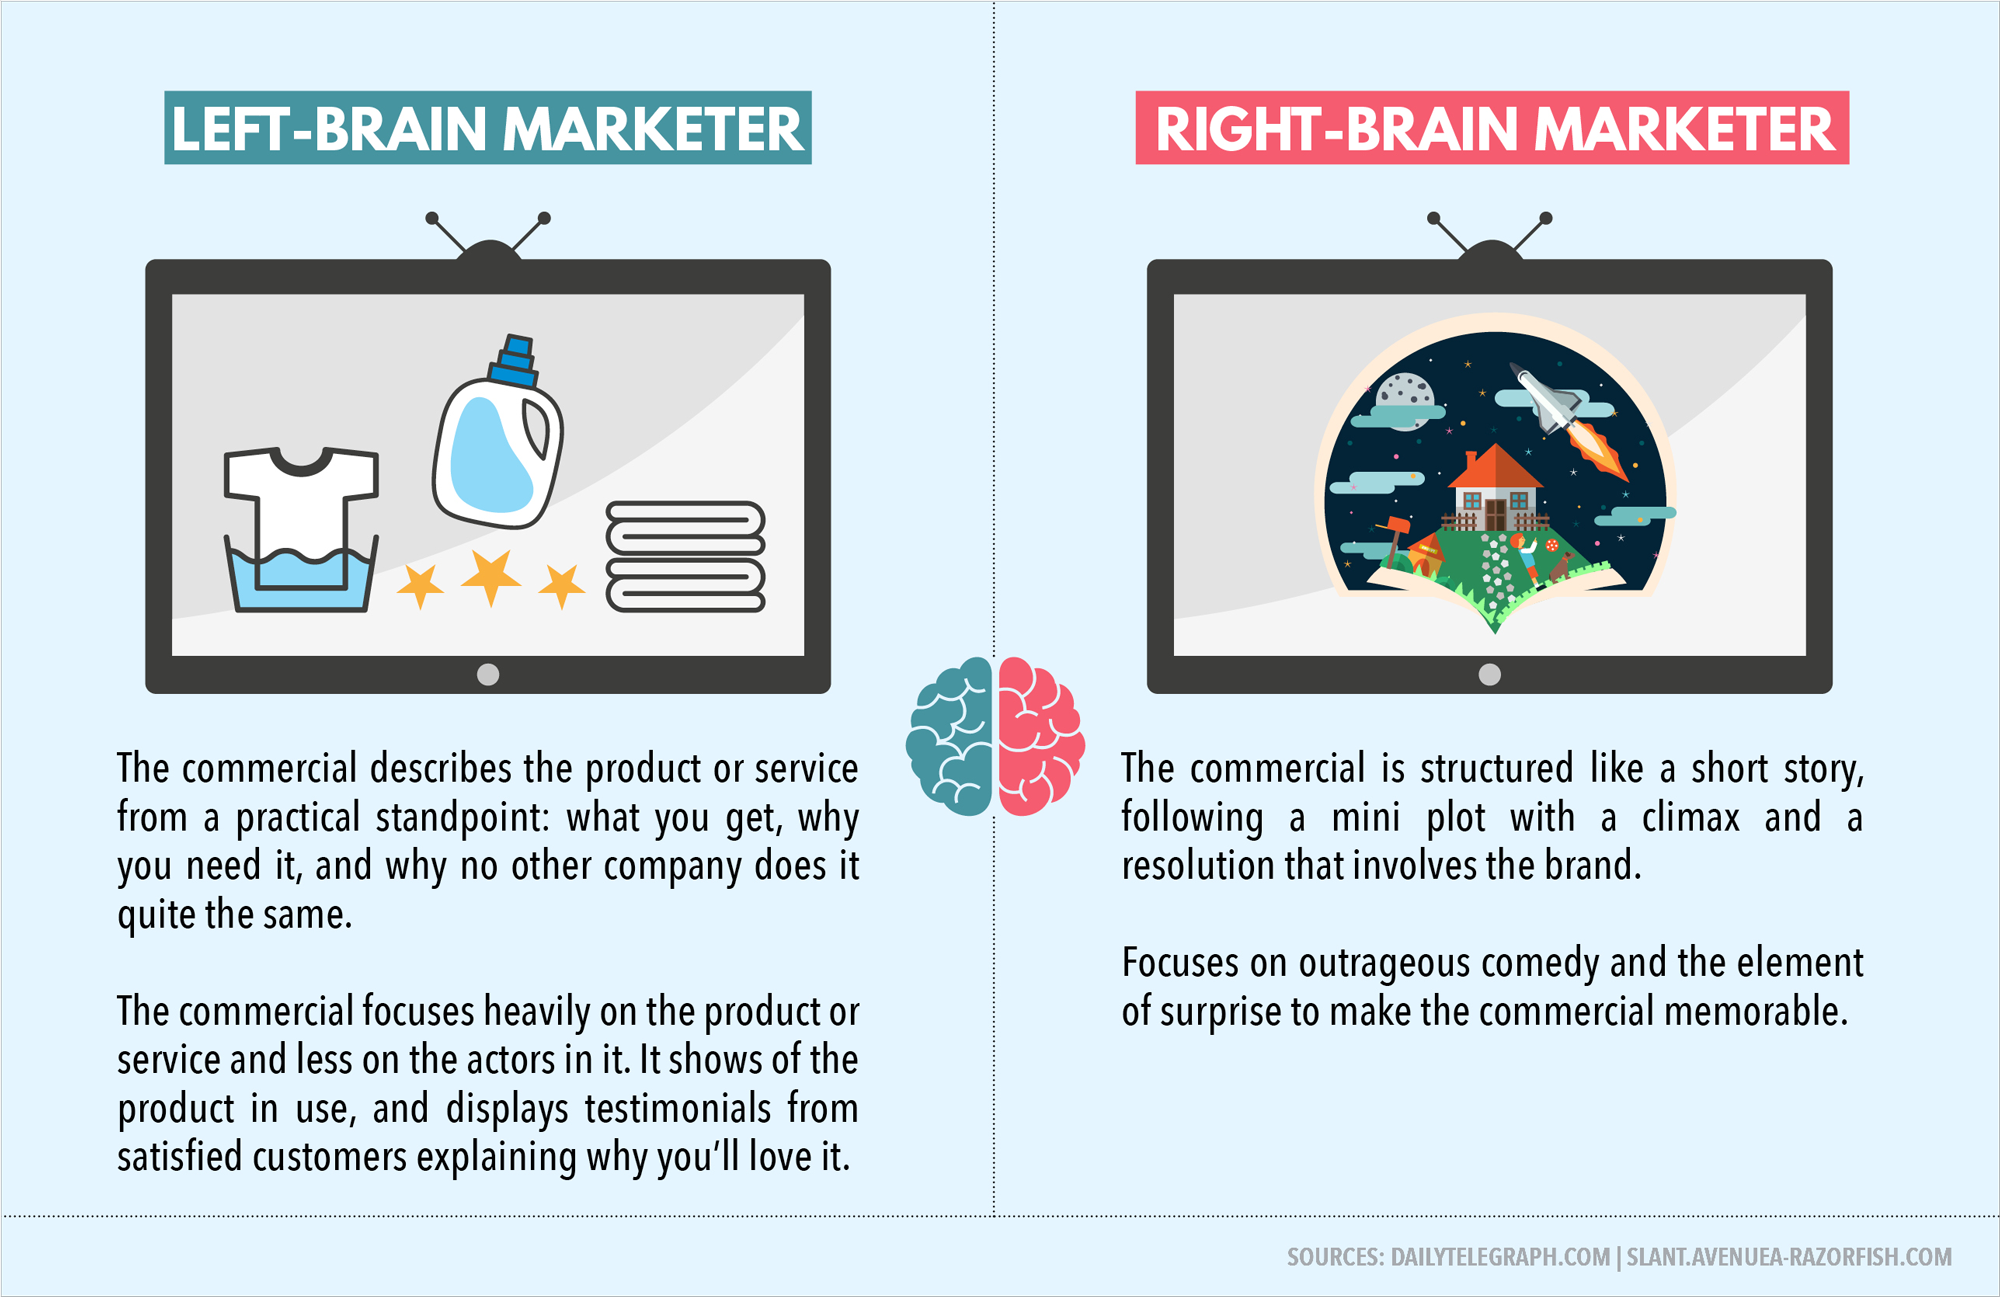 Left Brained Vs Right Marketing Visual Learning Center By Simple Brain Diagram Clipart Best Most Individualswhile Leaning Toward One Side Or The Other In Terms Of Personality Traitshave A Mix Both Sides Their Personalities